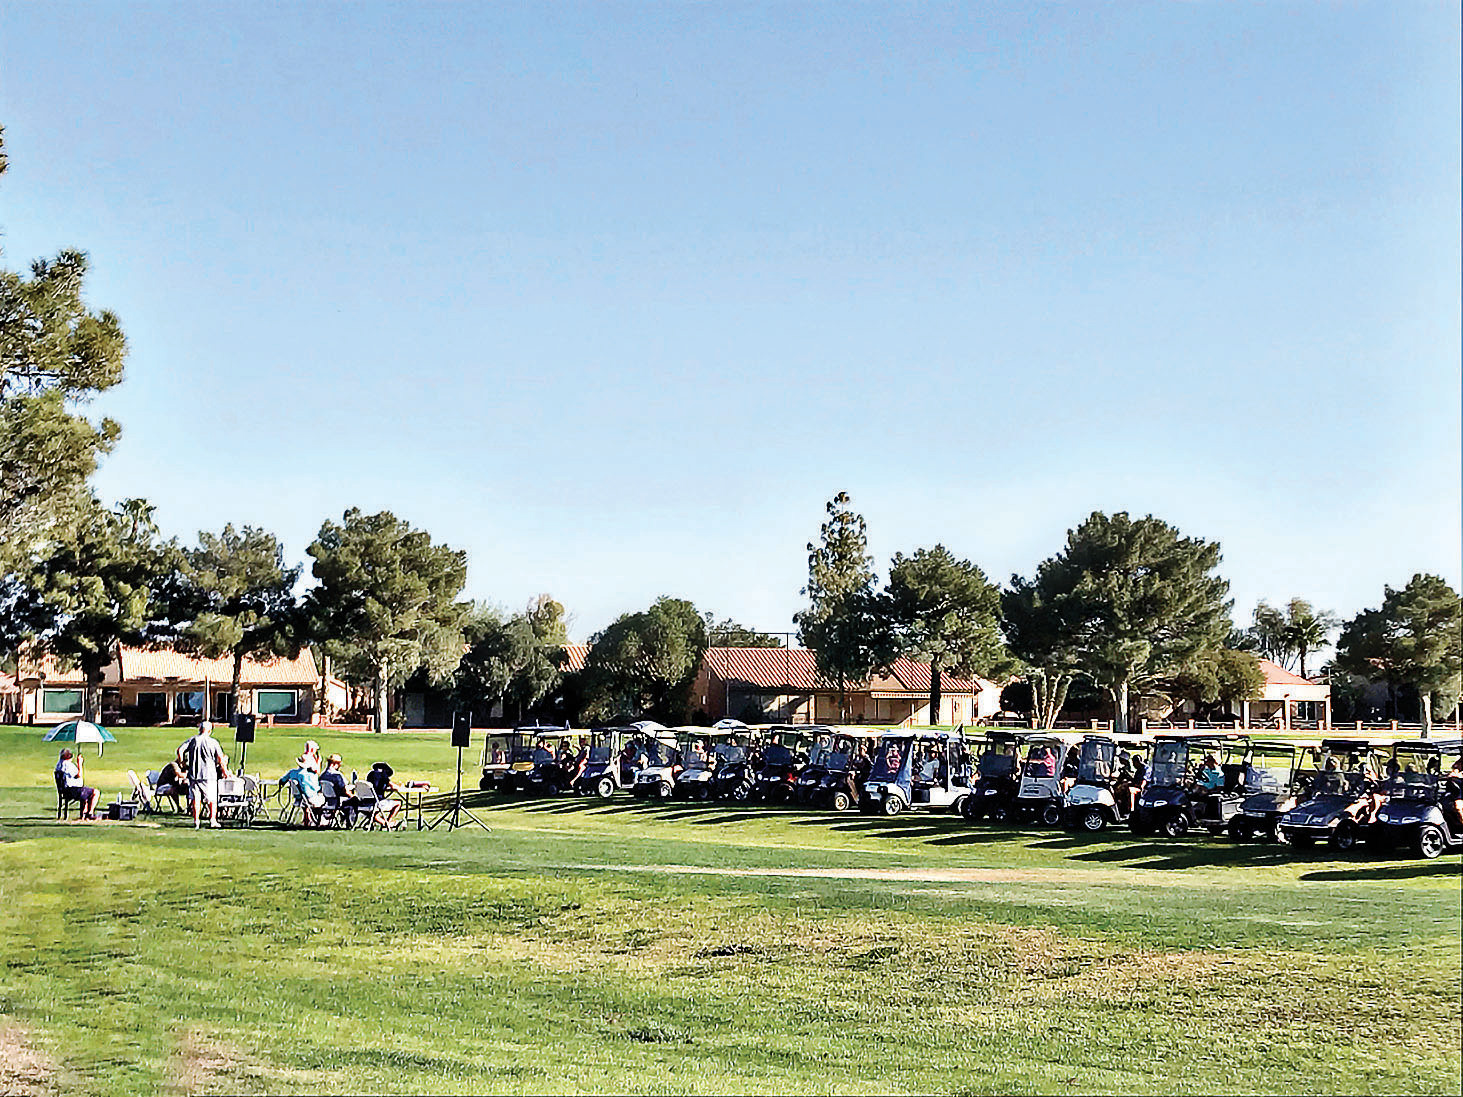 Lady 18ers are just one group in this innovative outdoor meeting of SunBird Golf Club.